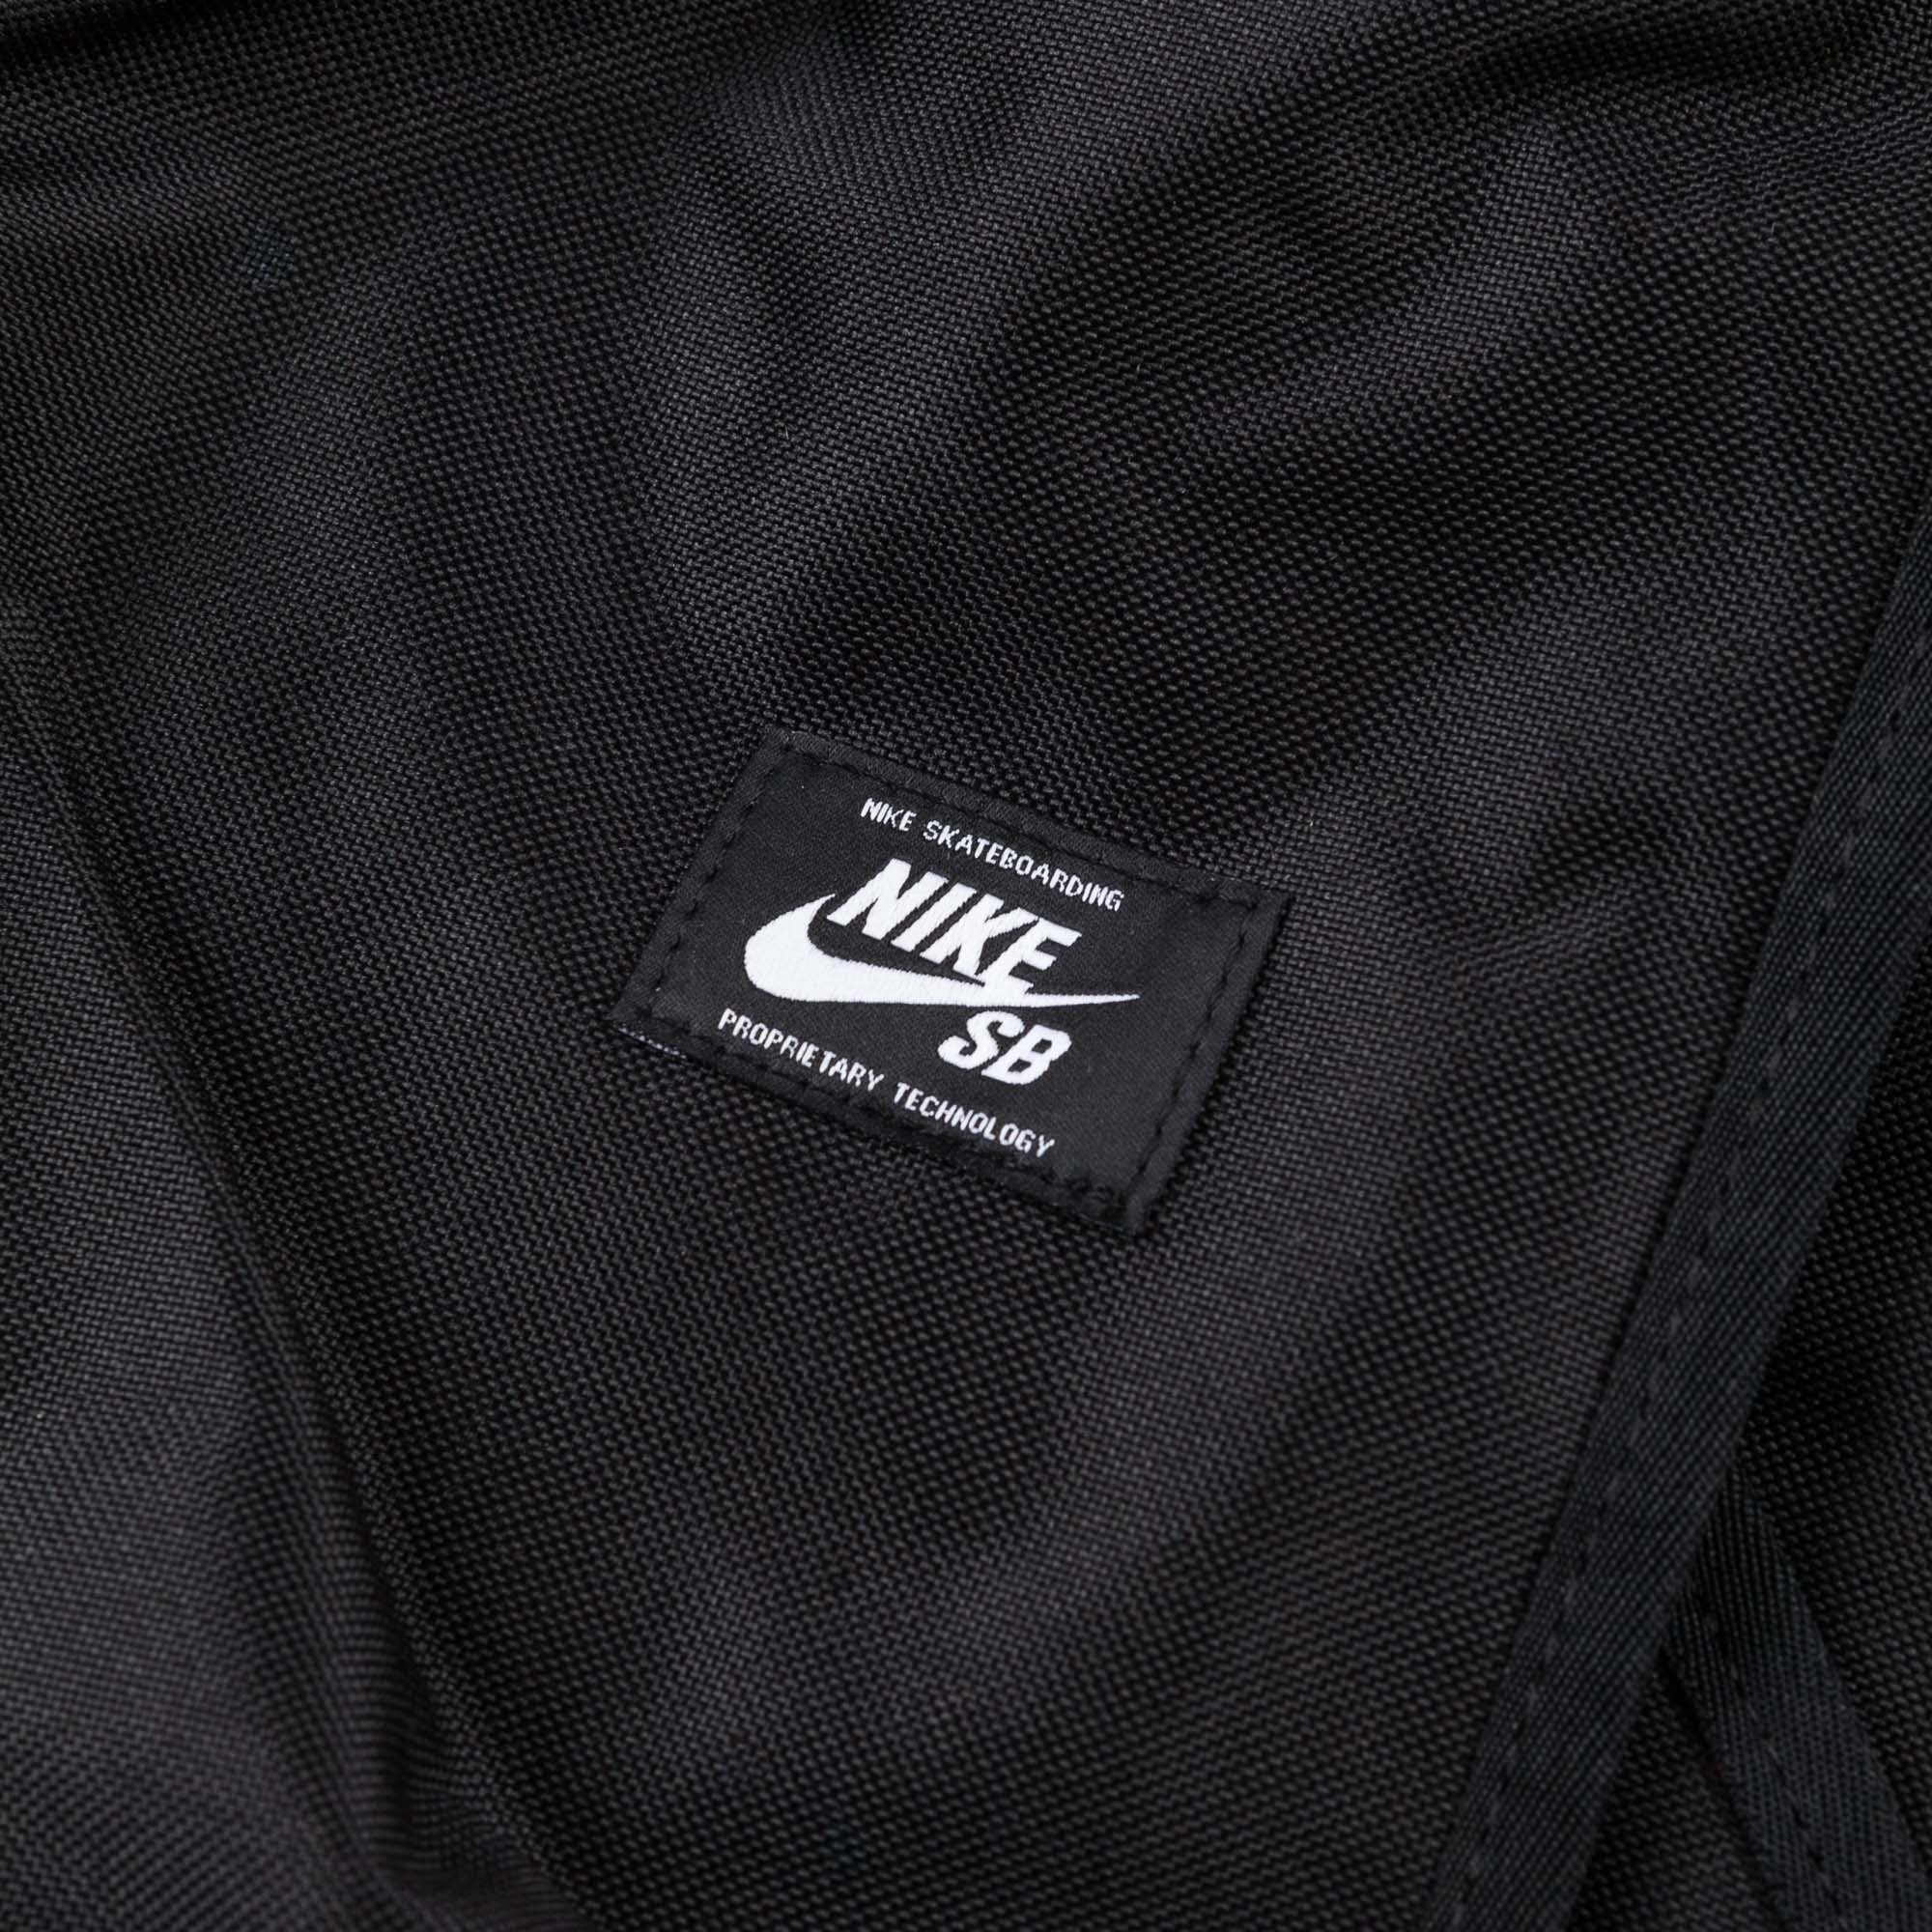 Nike SB Shelter Skateboarding Backpack - Black / Black / White